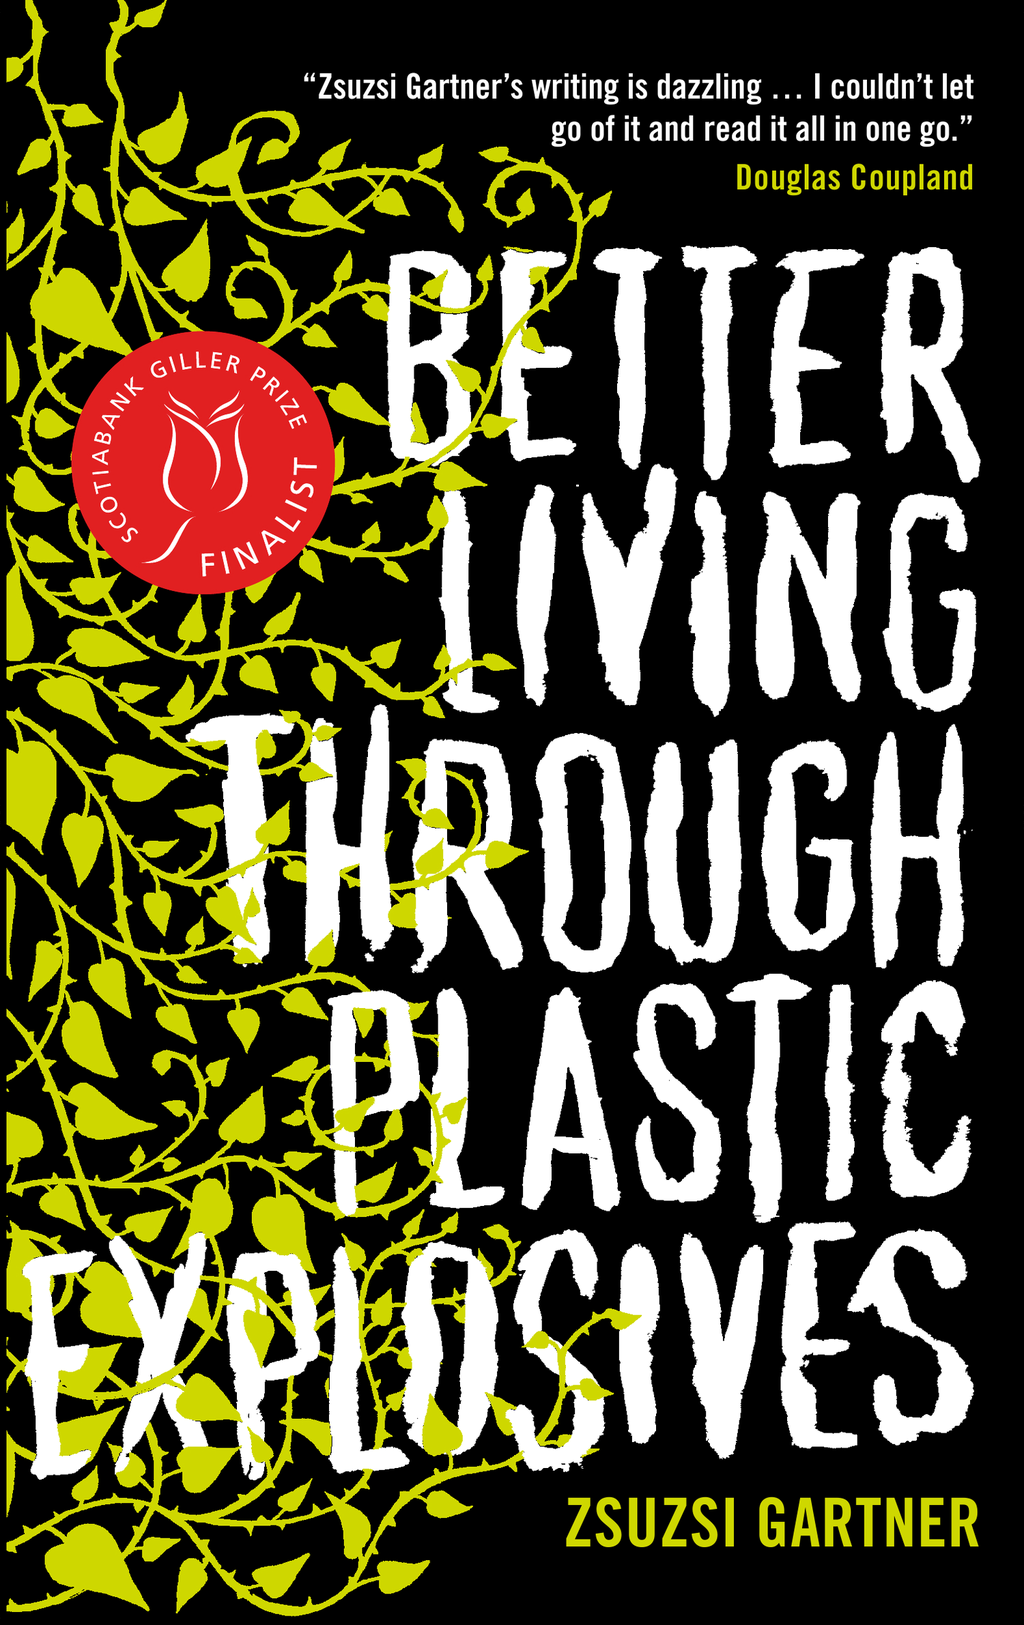 Cover Image: Better Living Through Plastic Explosives